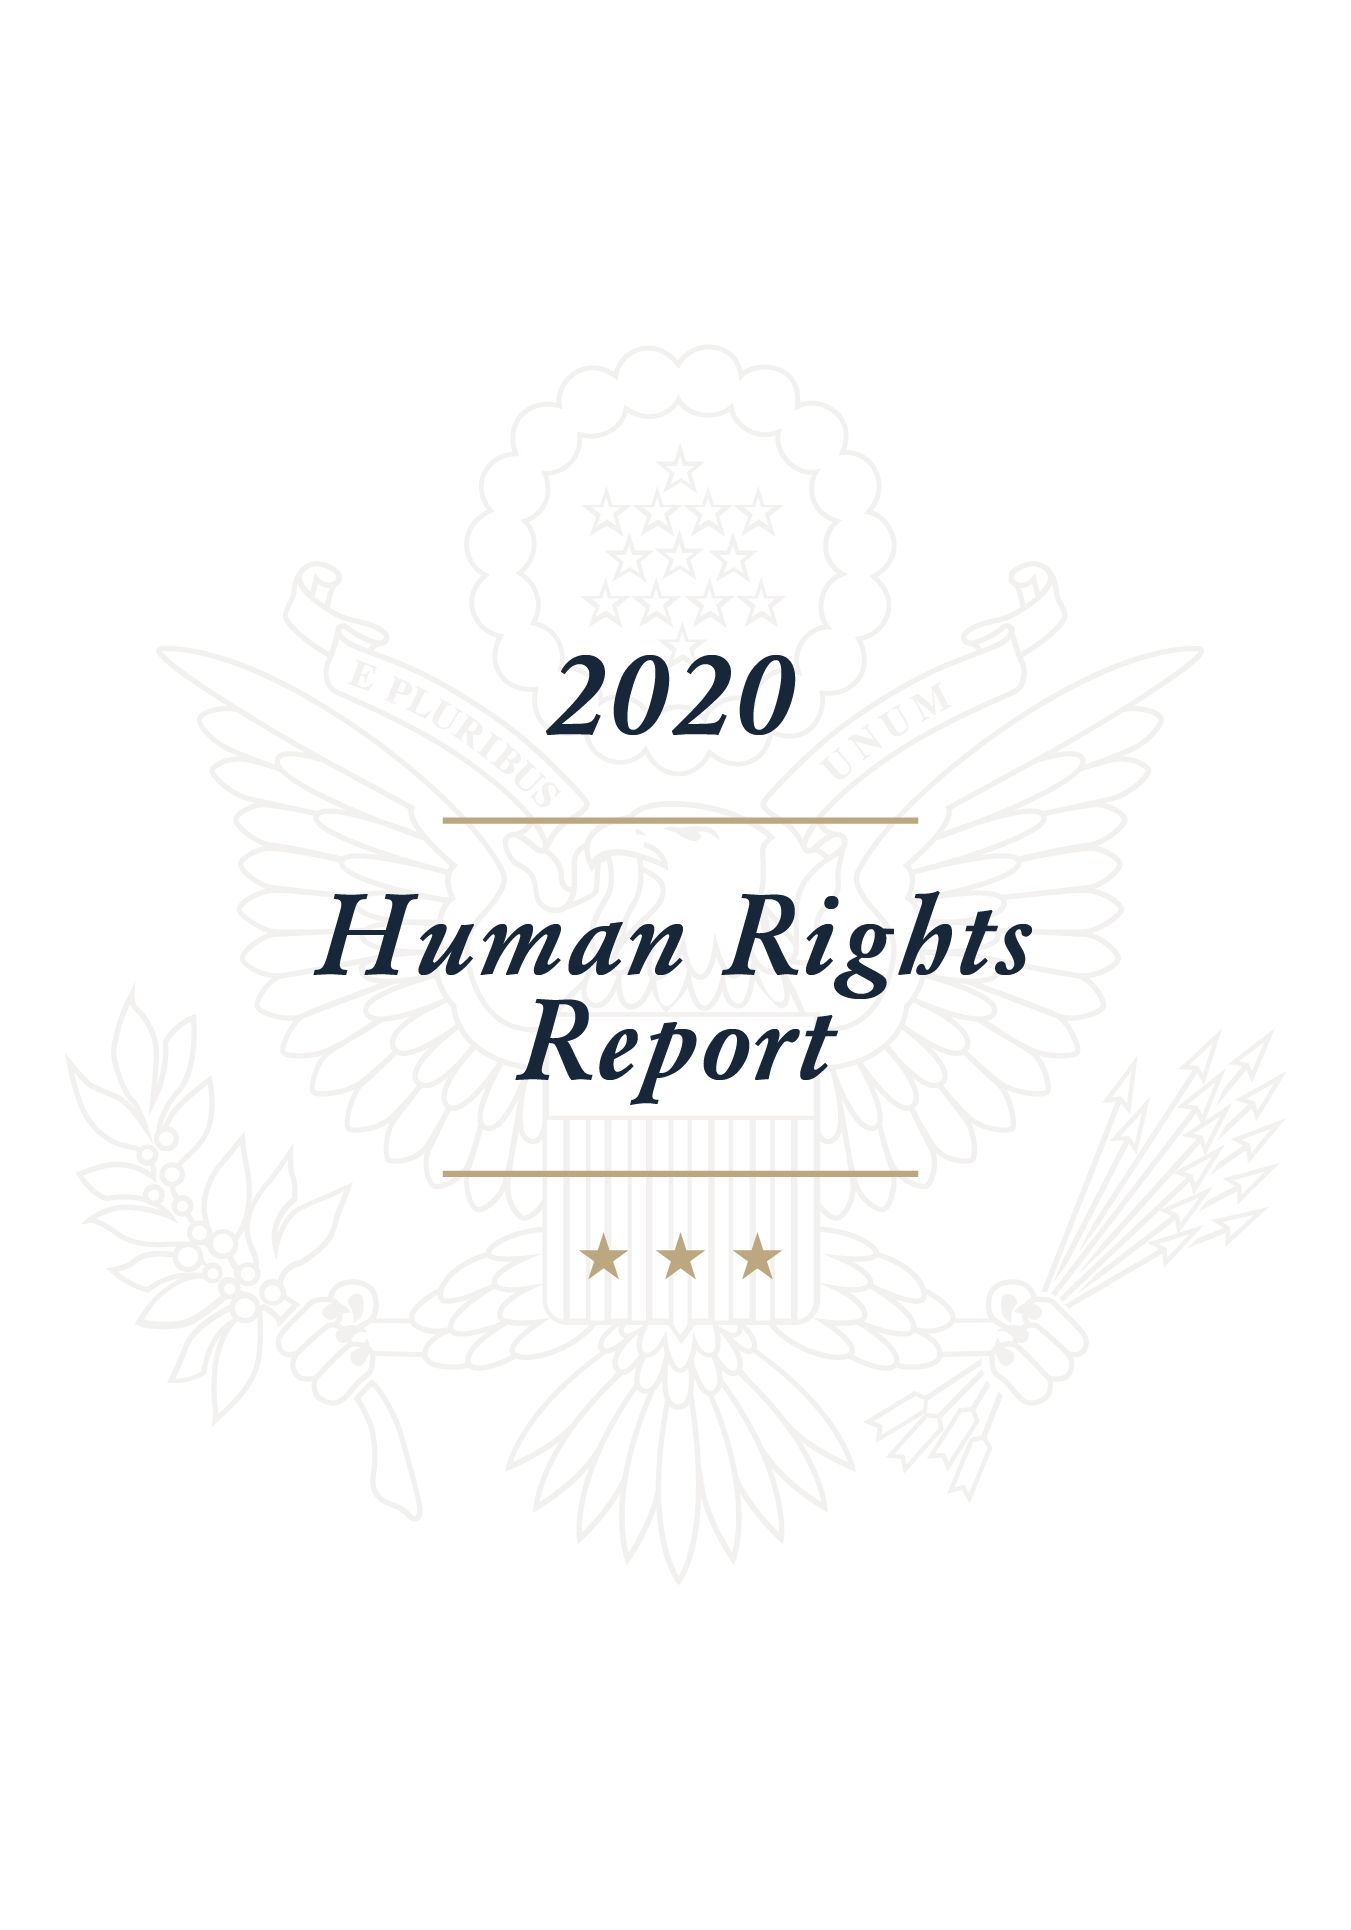 2020 Human Rights Report